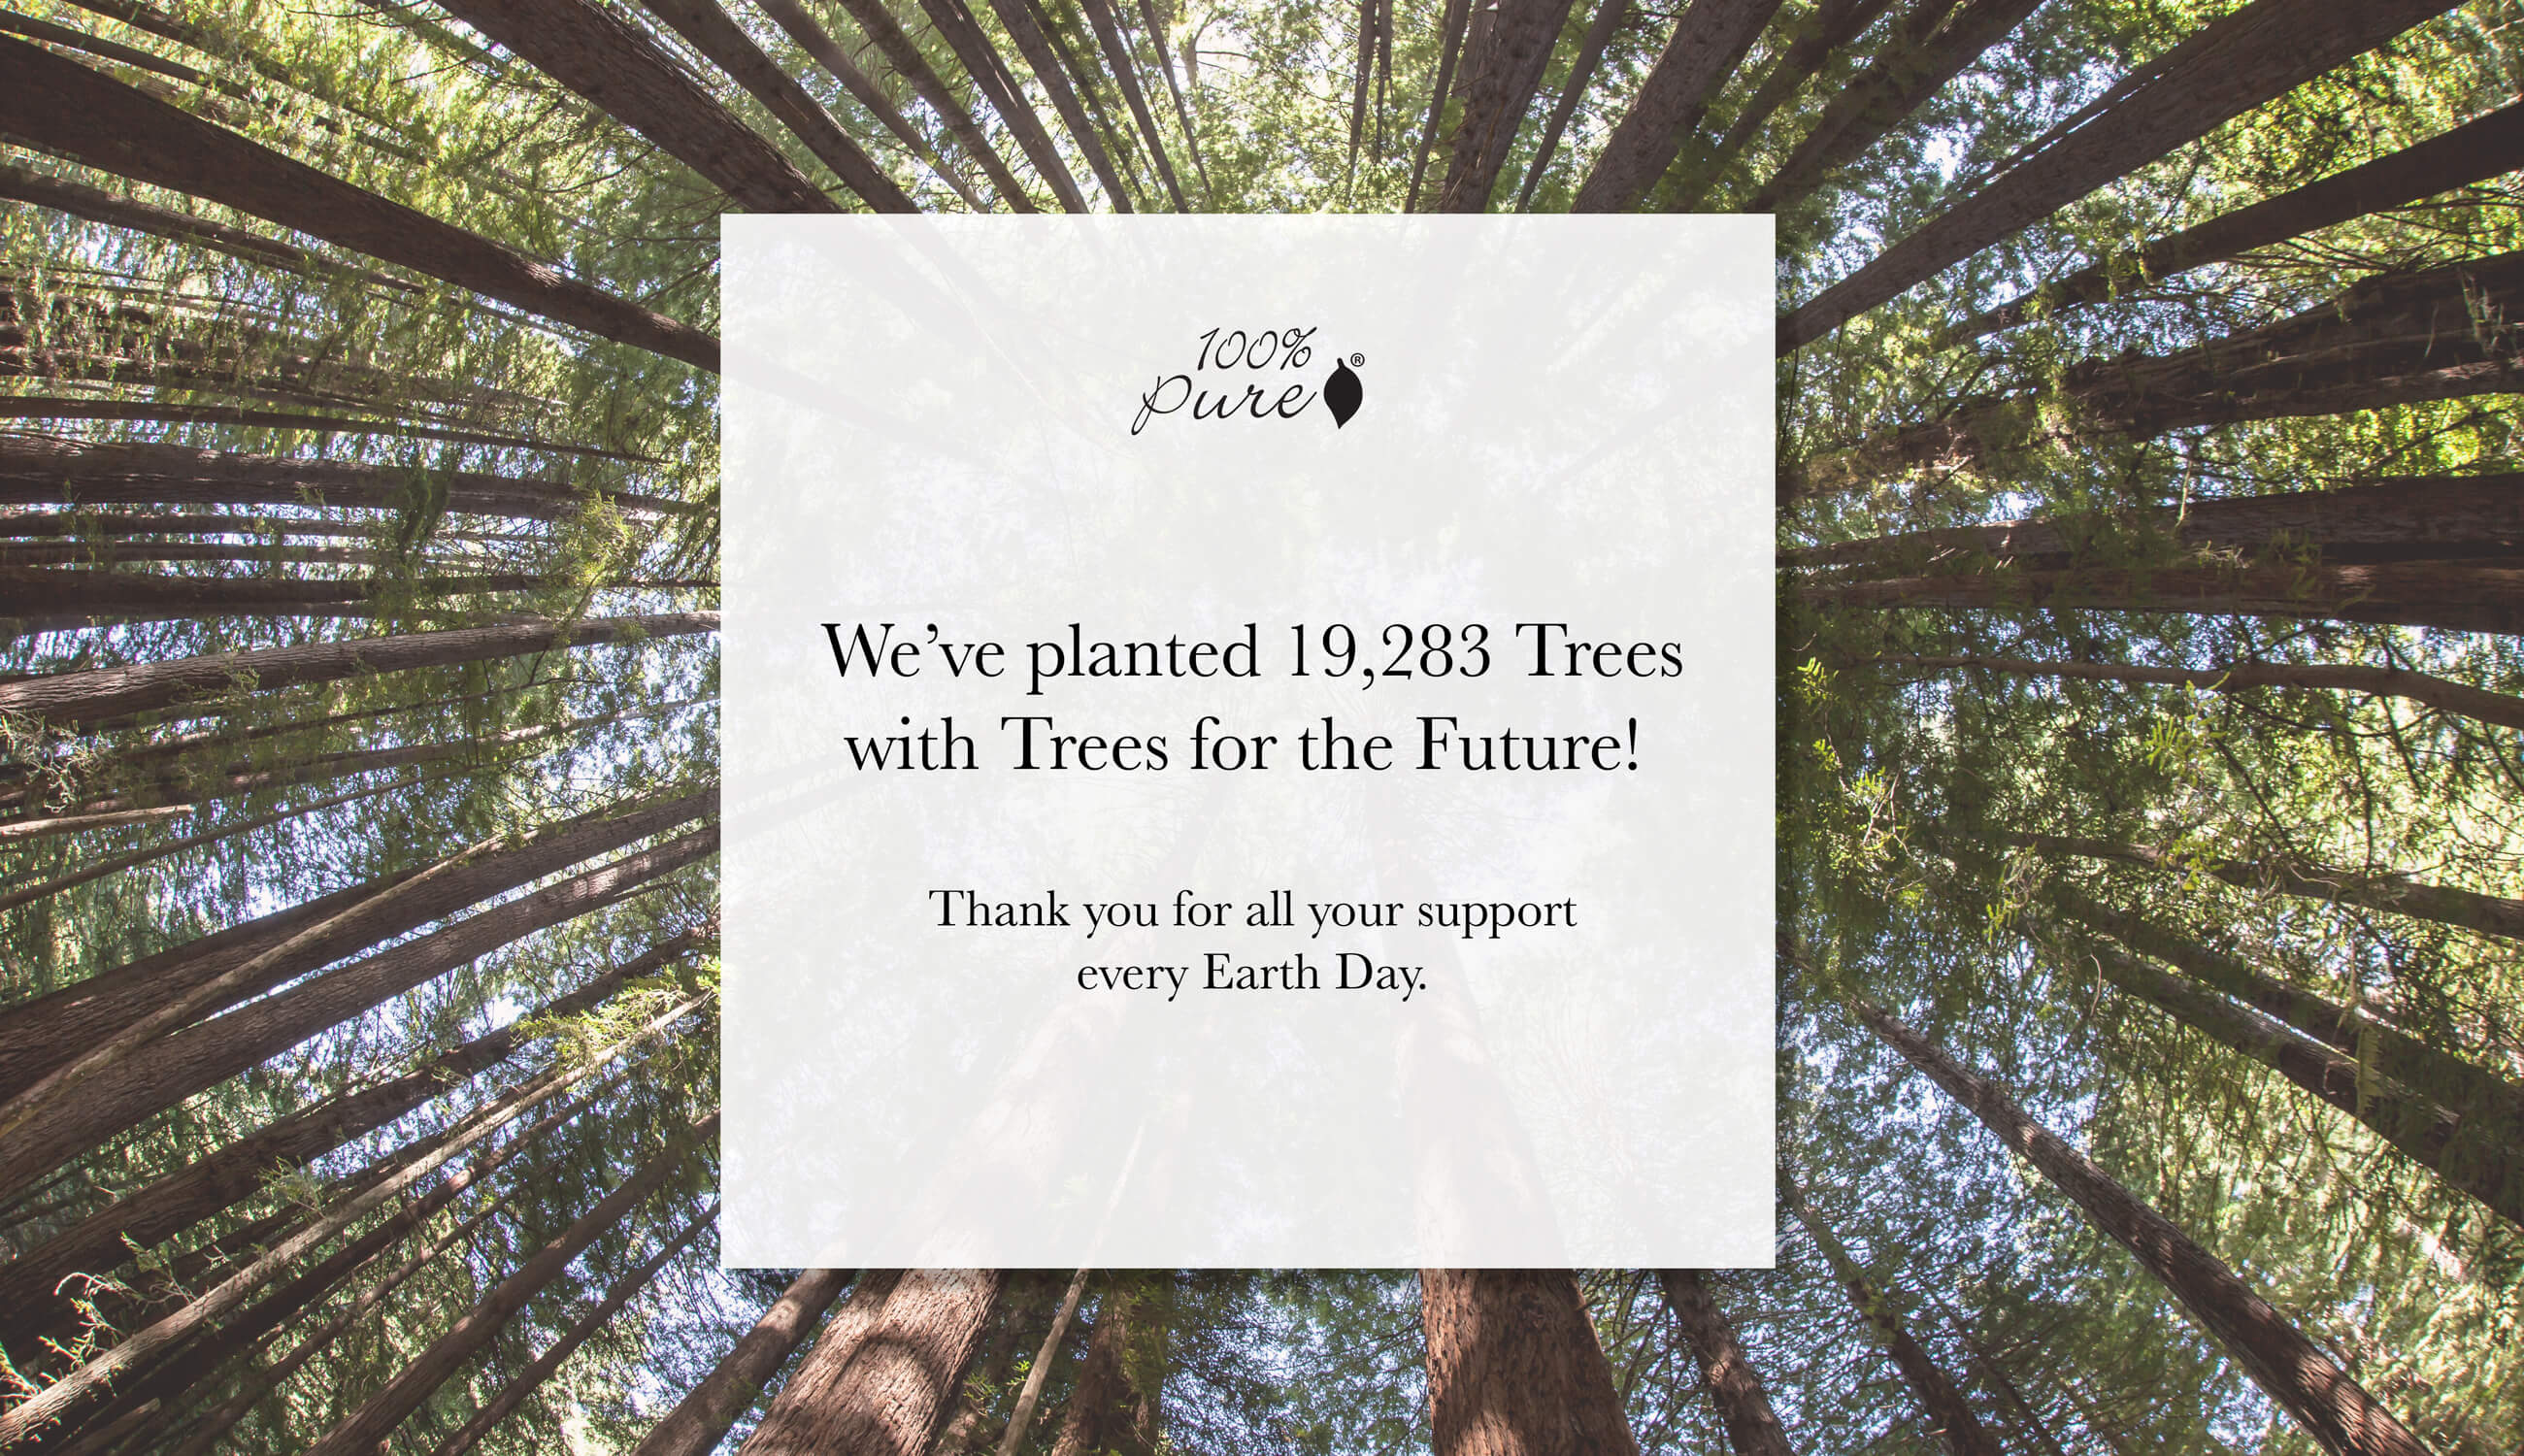 Earth Day Trees Planted